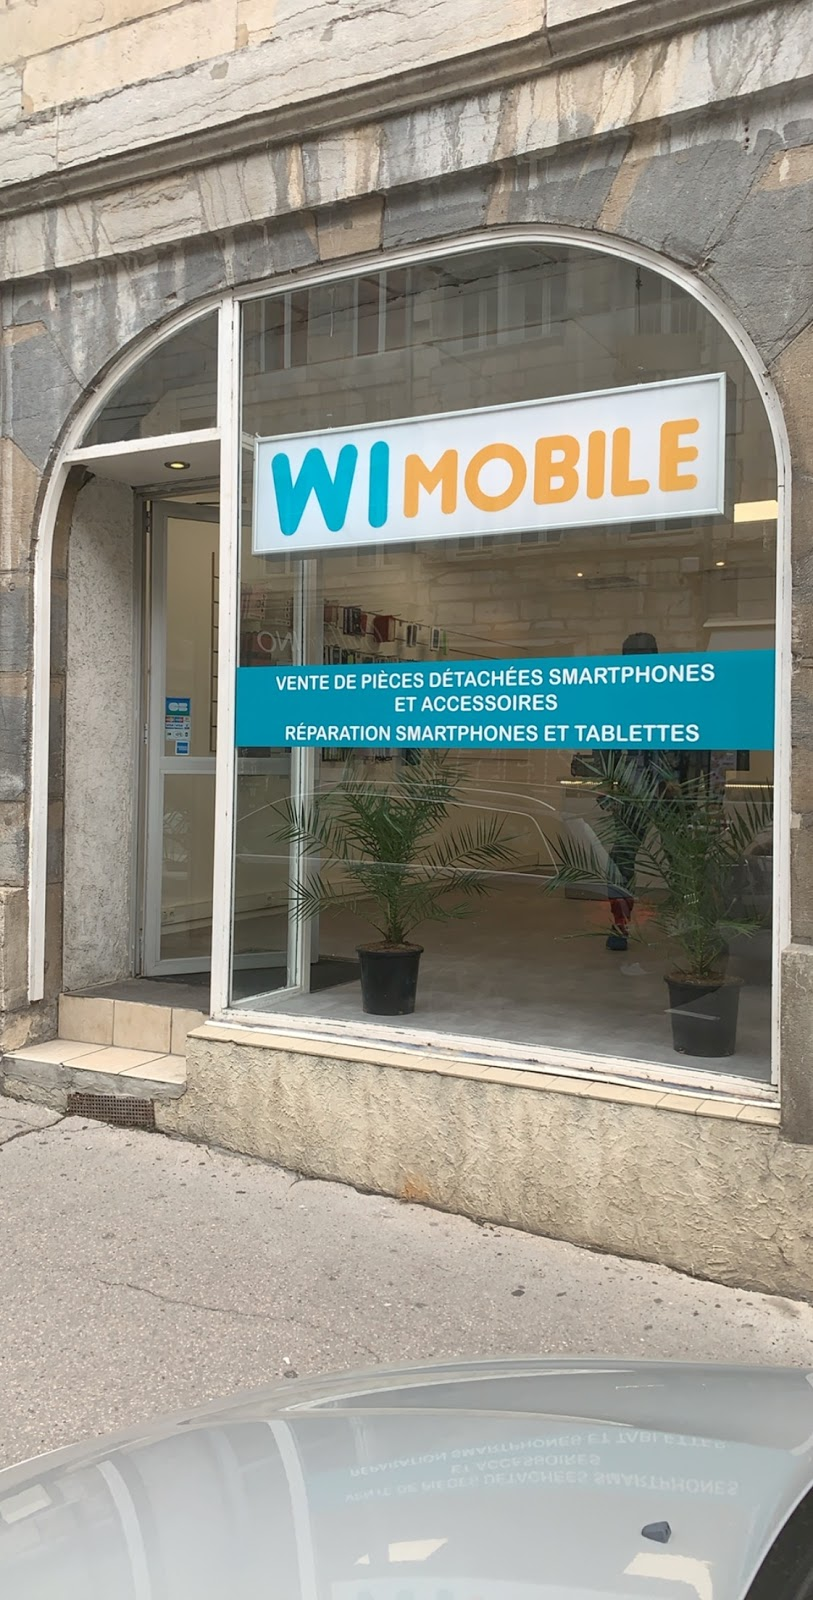 photo de la boutique de WI MOBILE